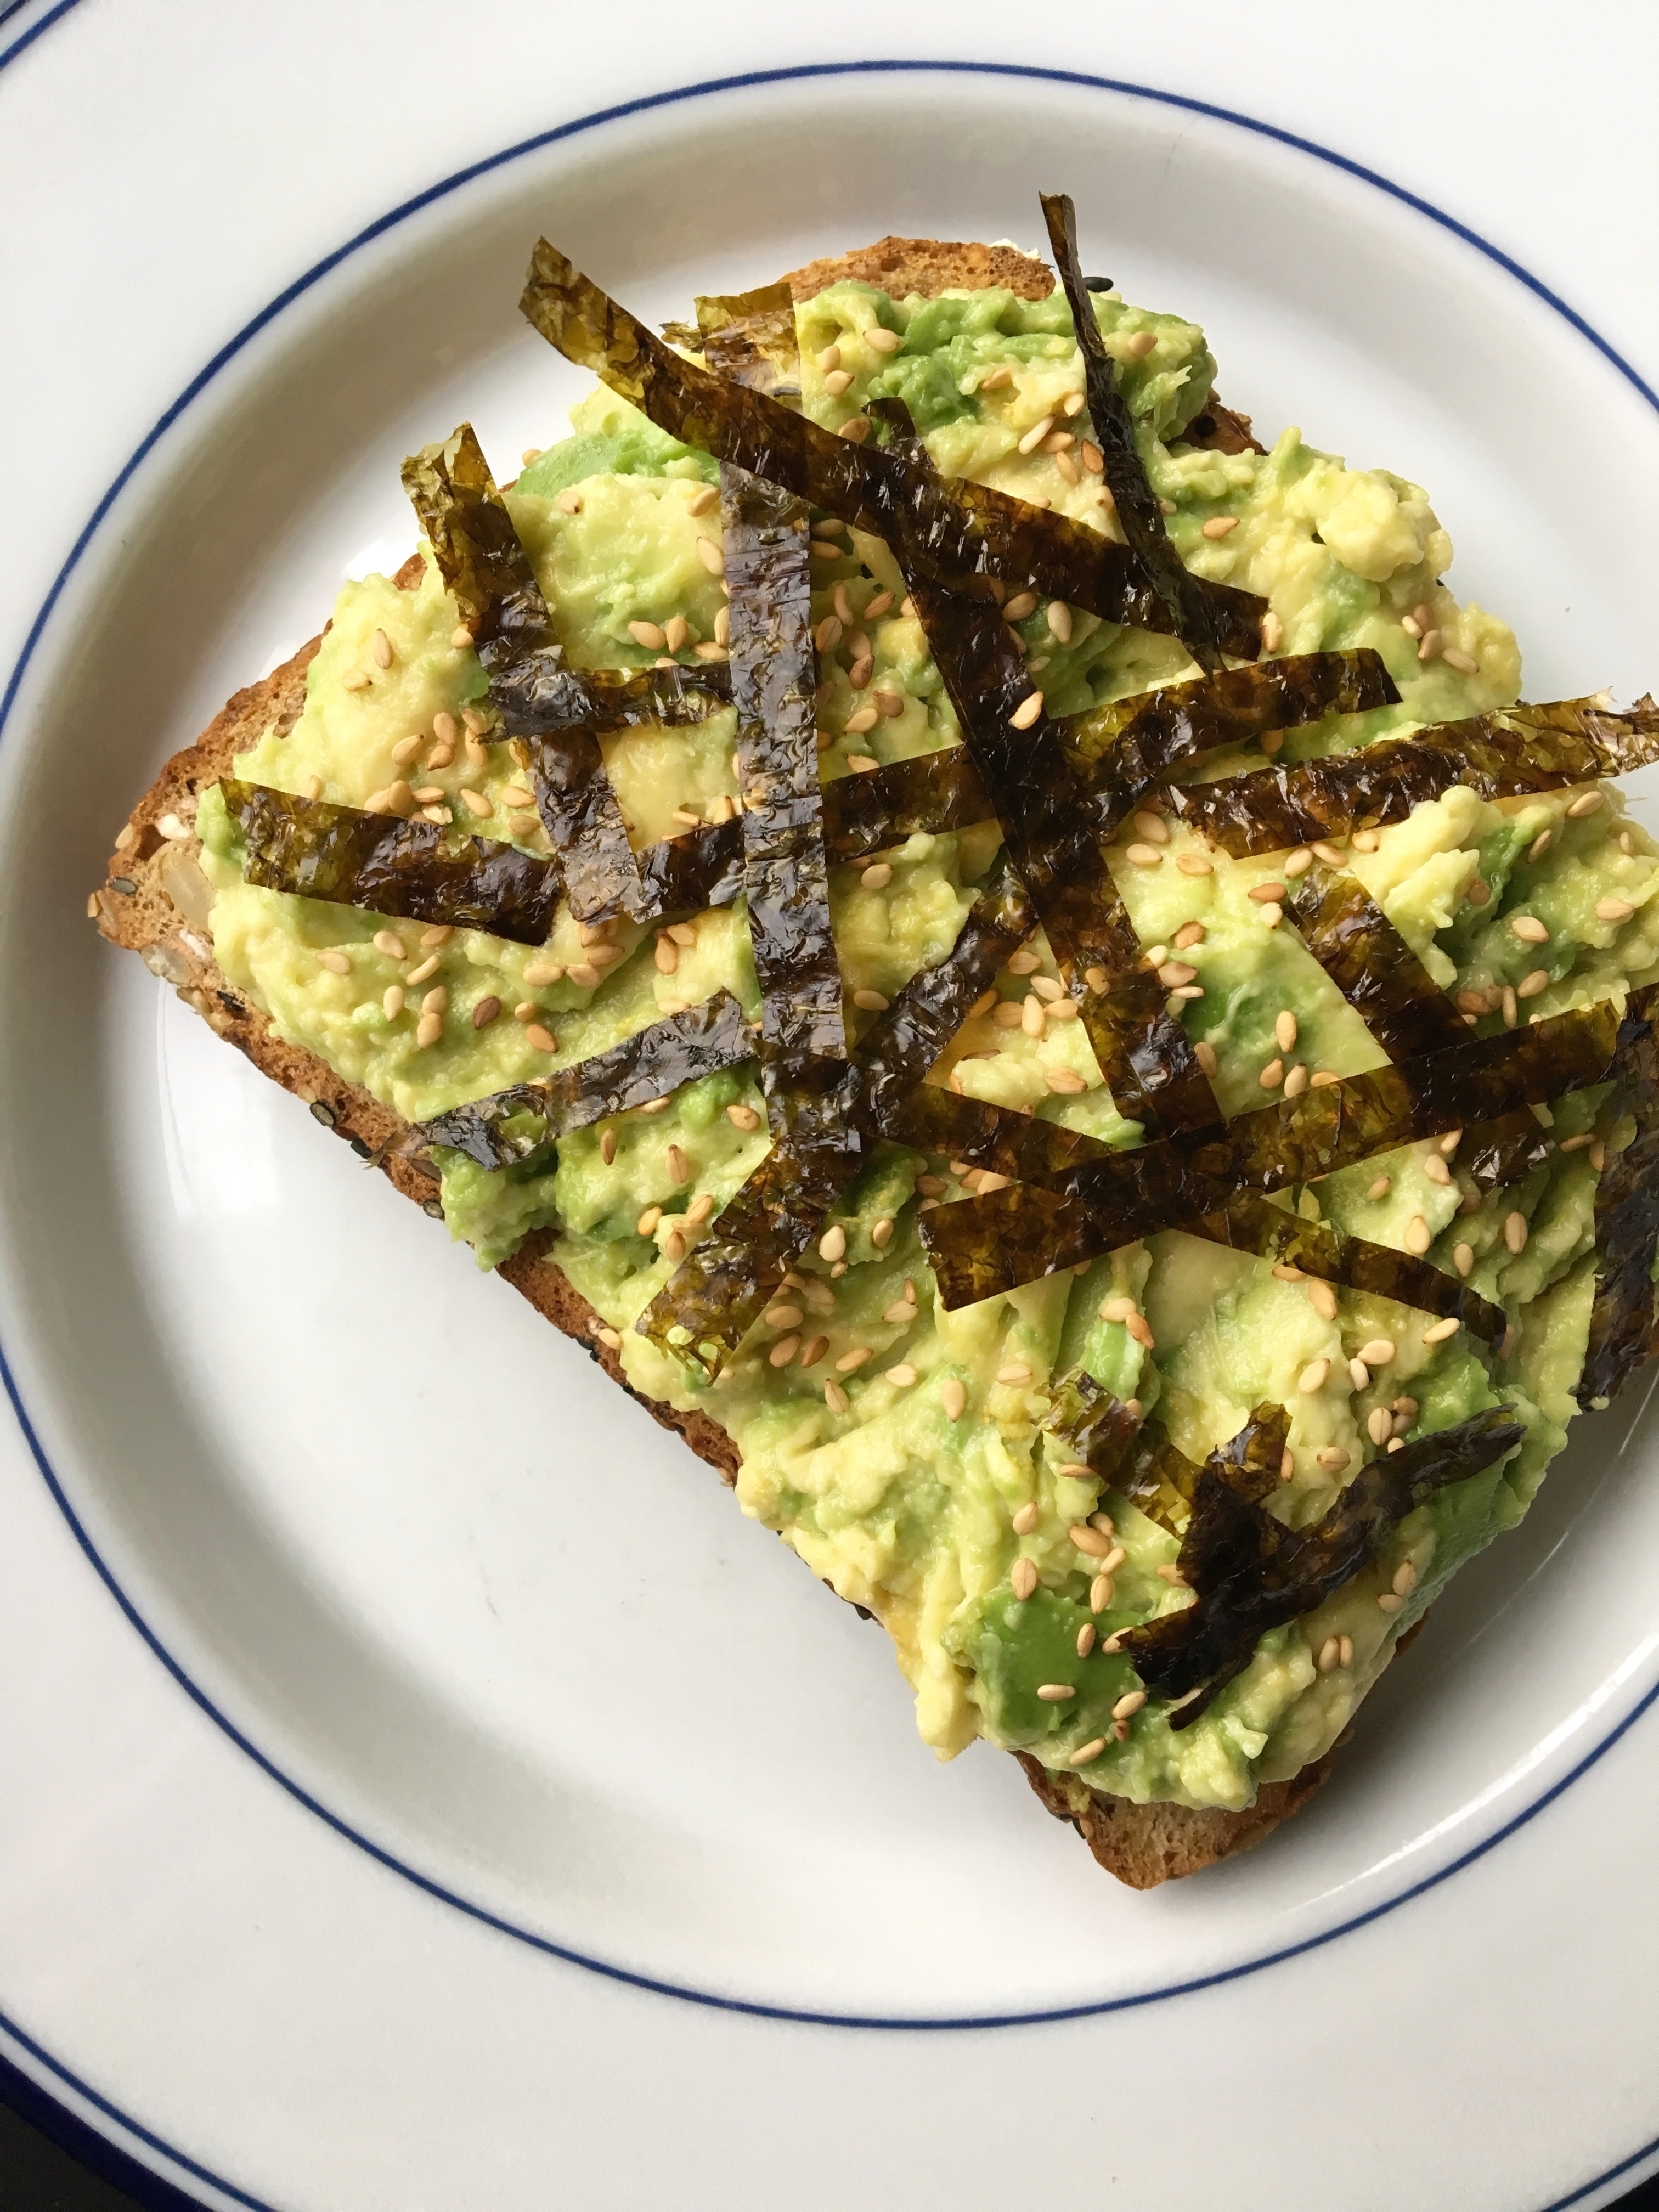 Savory Avocado Toast with Nori & Toasted Sesame Seeds | Living Healthy in Seattle